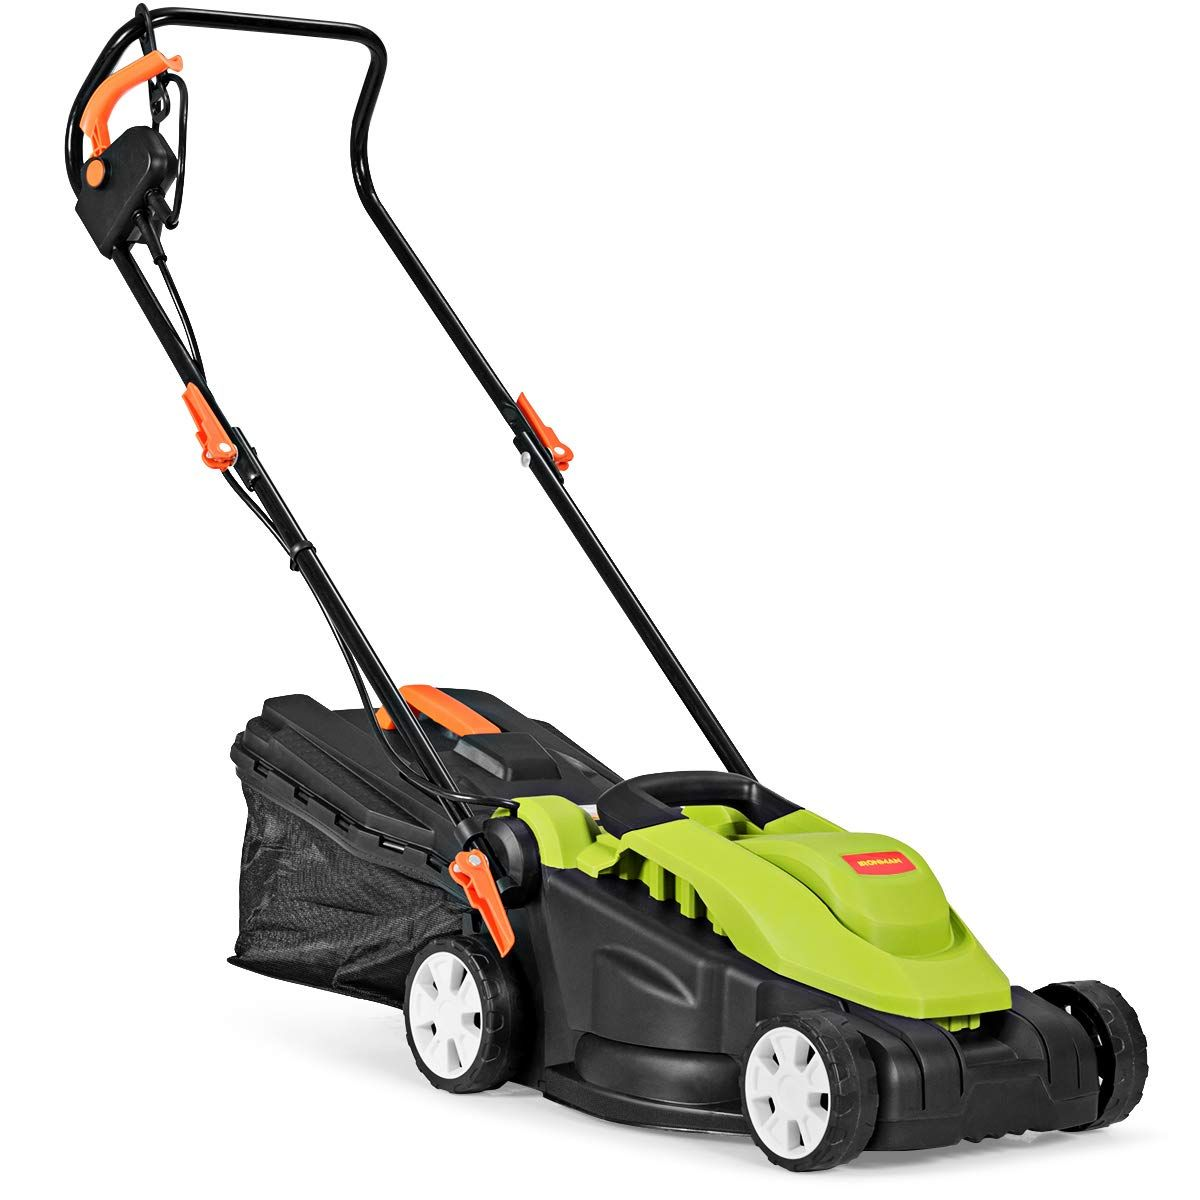 Goplus Electric Lawn Mower W Folding Handle And Detachable Collection Box Learn More By Visiting The Image Link It Is An A In 2020 Lawn Mower Collection Box Mower